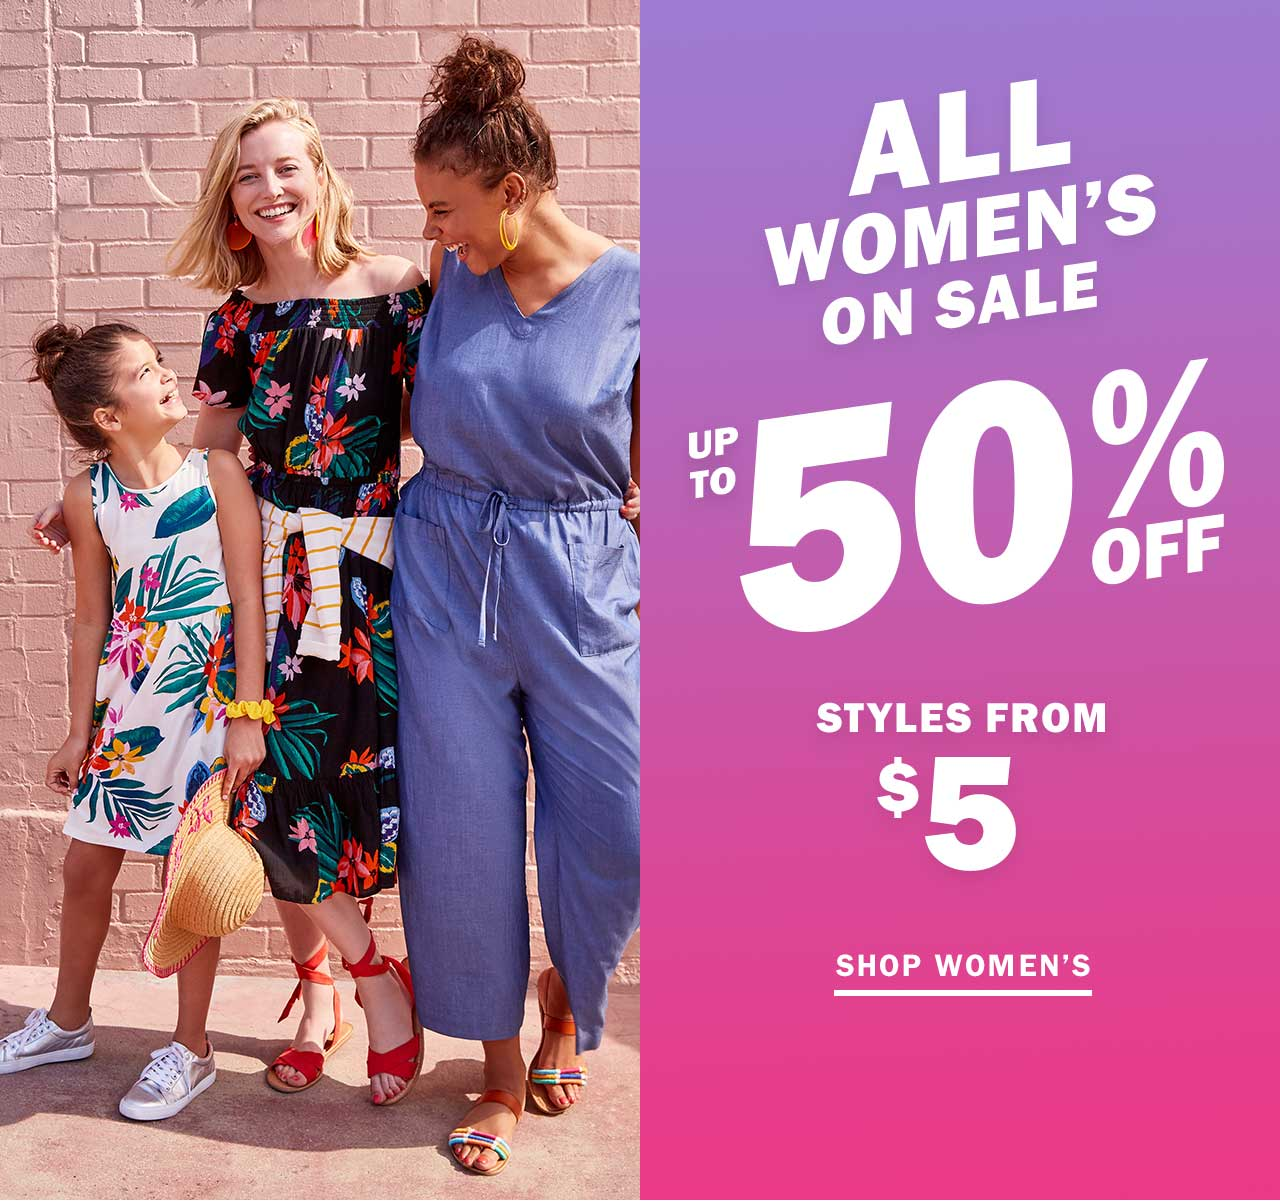 ALL WOMEN'S ON SALE UP TO 50% OFF